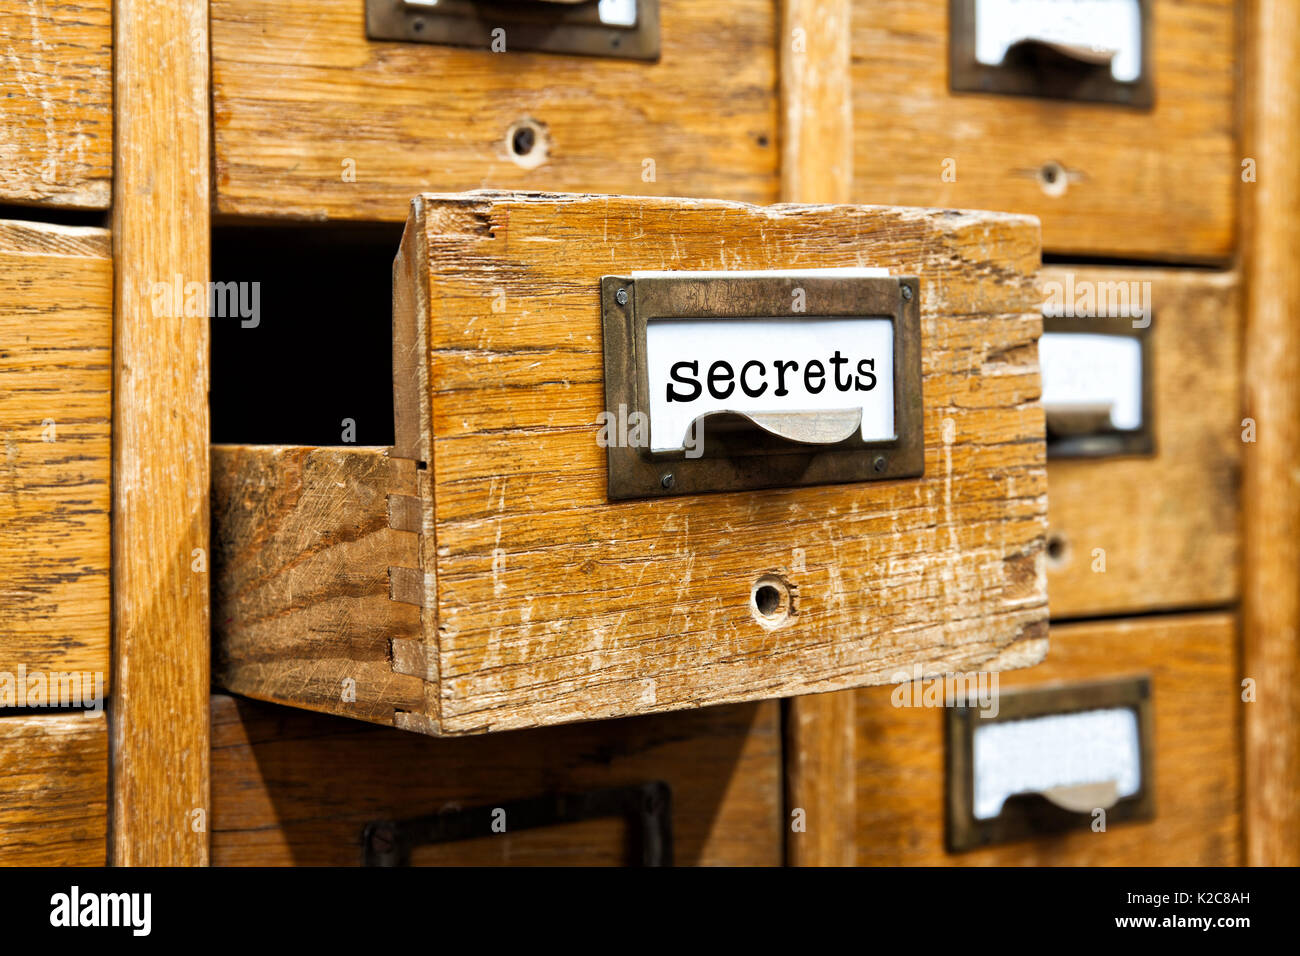 Secrets information concept. Opened box archive storage, filing cabinet interior. wooden boxes with index cards. library service management - Stock Image